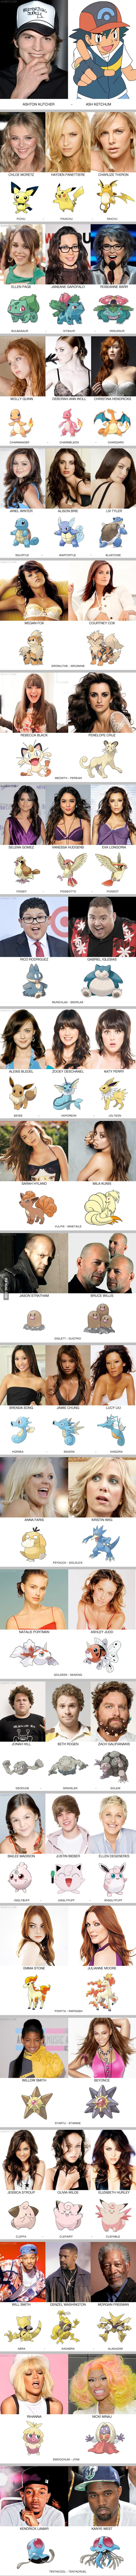 If Celebrities Are Pokémon, This Is How They Would Evolve